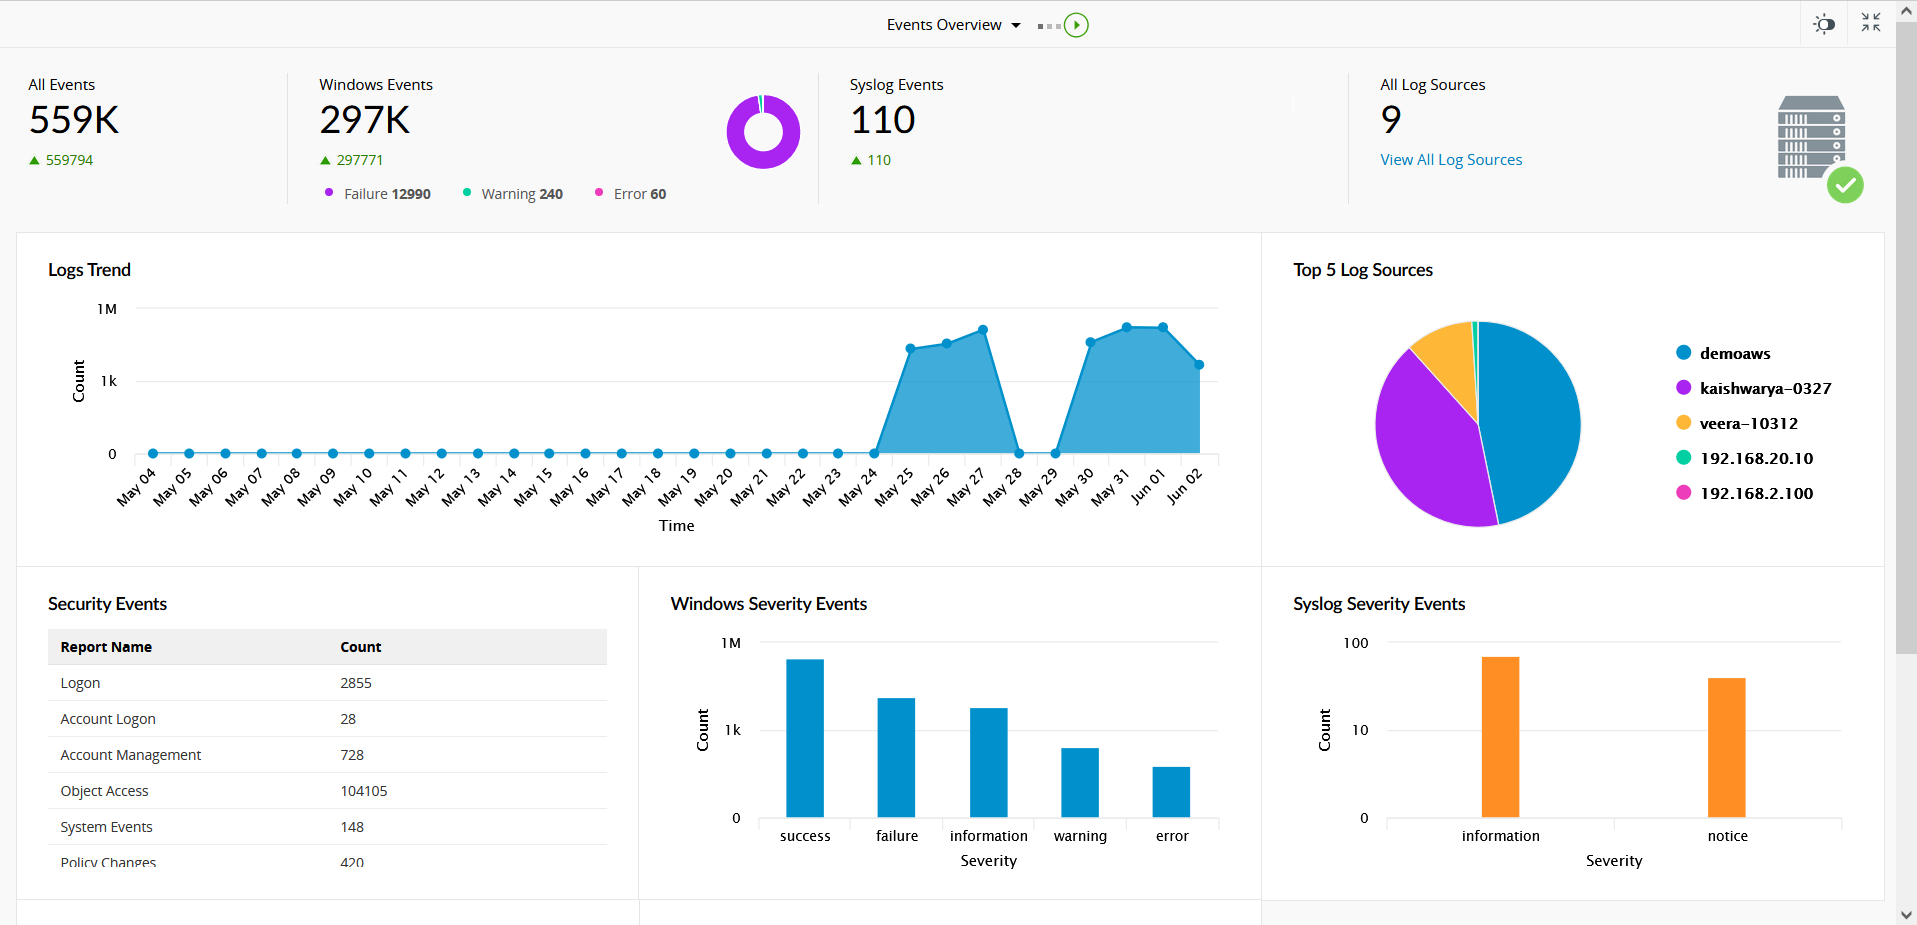 viewing-the-dashboard-in-full-screen